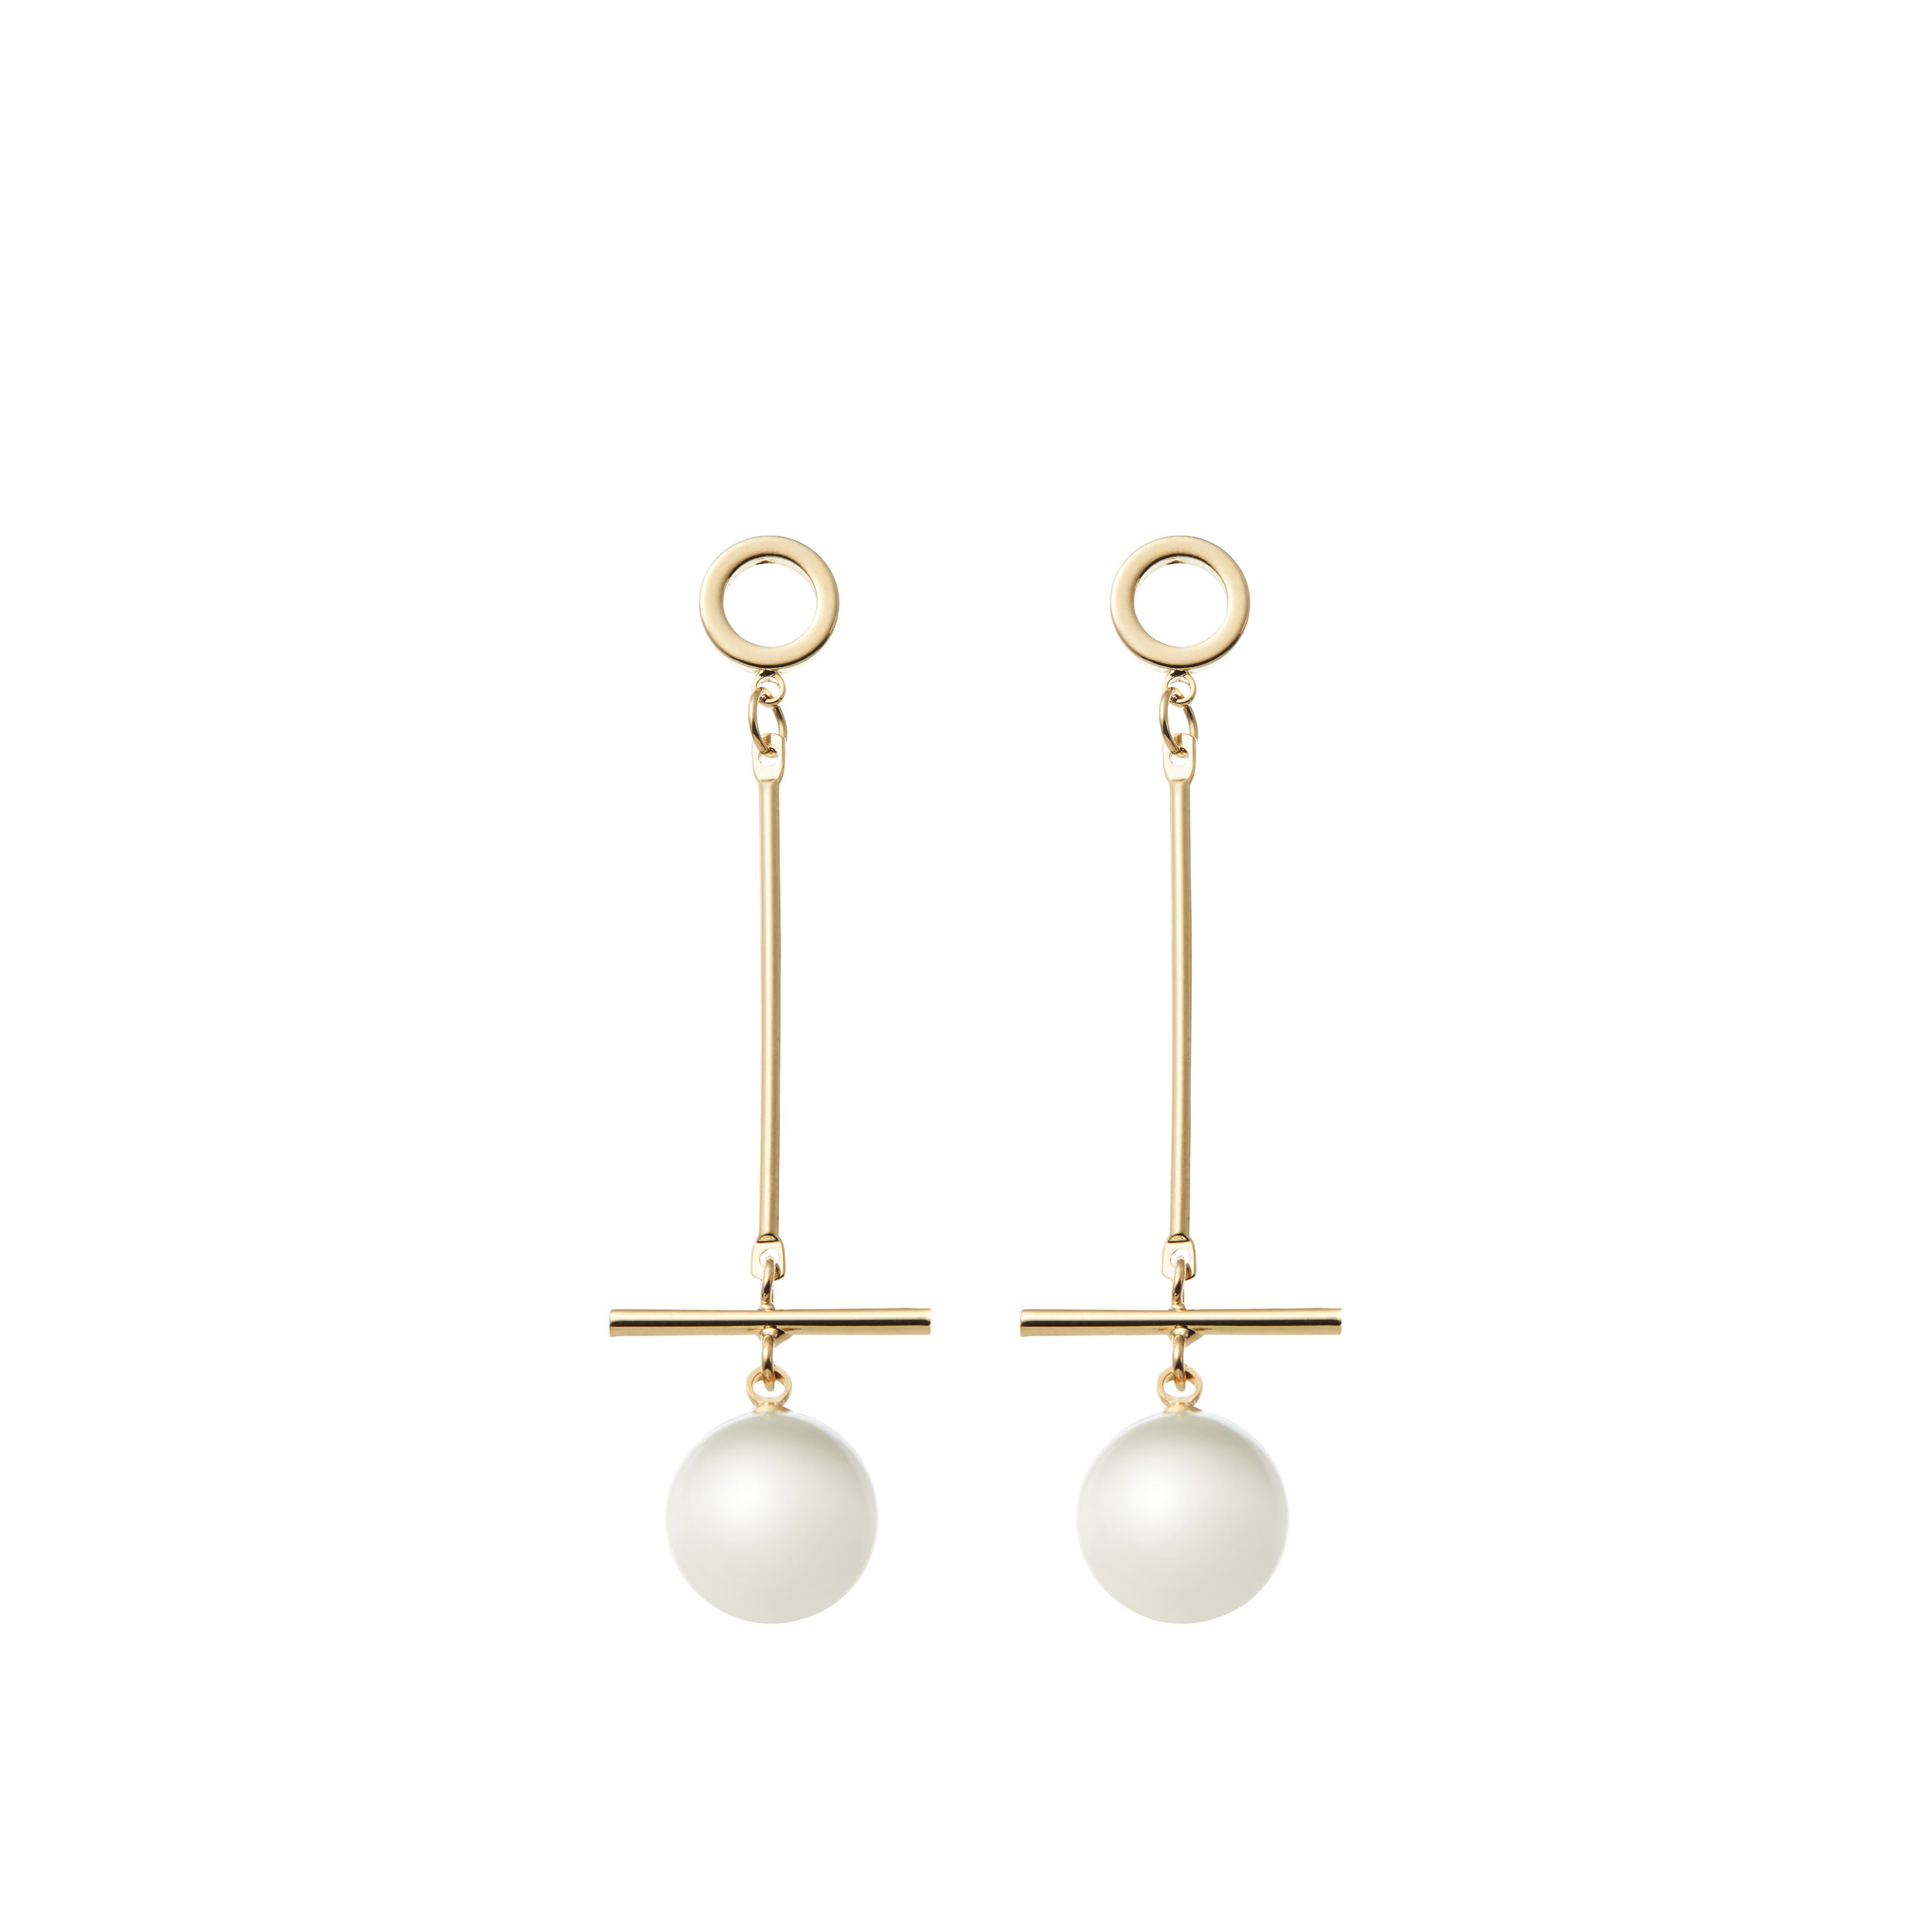 Jewellery Designer Amelie George Pearl and Gold Earrings featured on LOVE FIND CO.